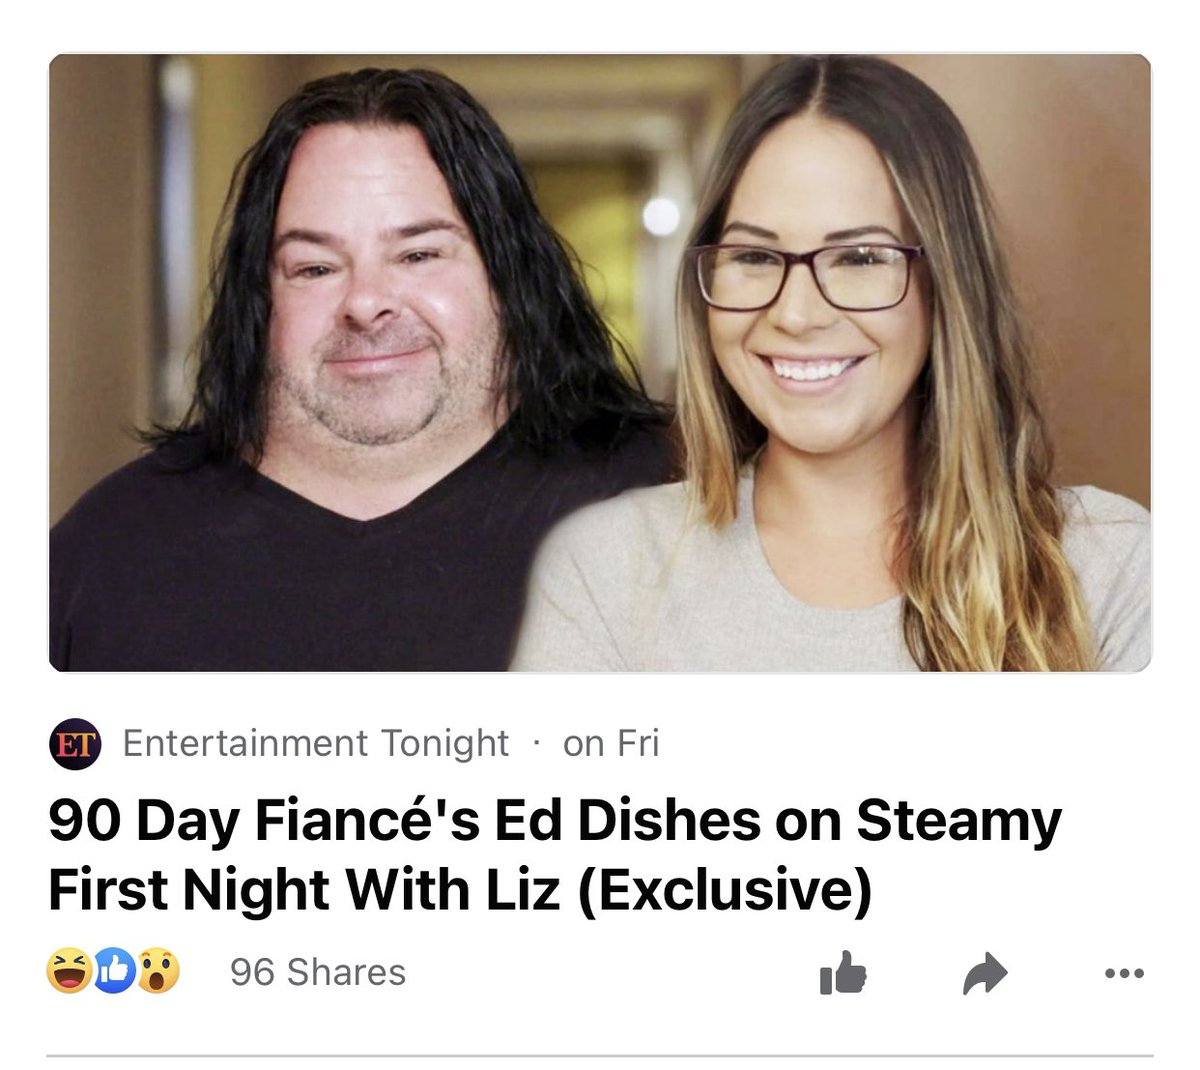 #90DayFiance #90DaySingleLife do we think this is real, or nah. Does Ed really think Liz likes him? Do you think Liz likes him? Did they really fuck? #qtna #BigEdQuestion